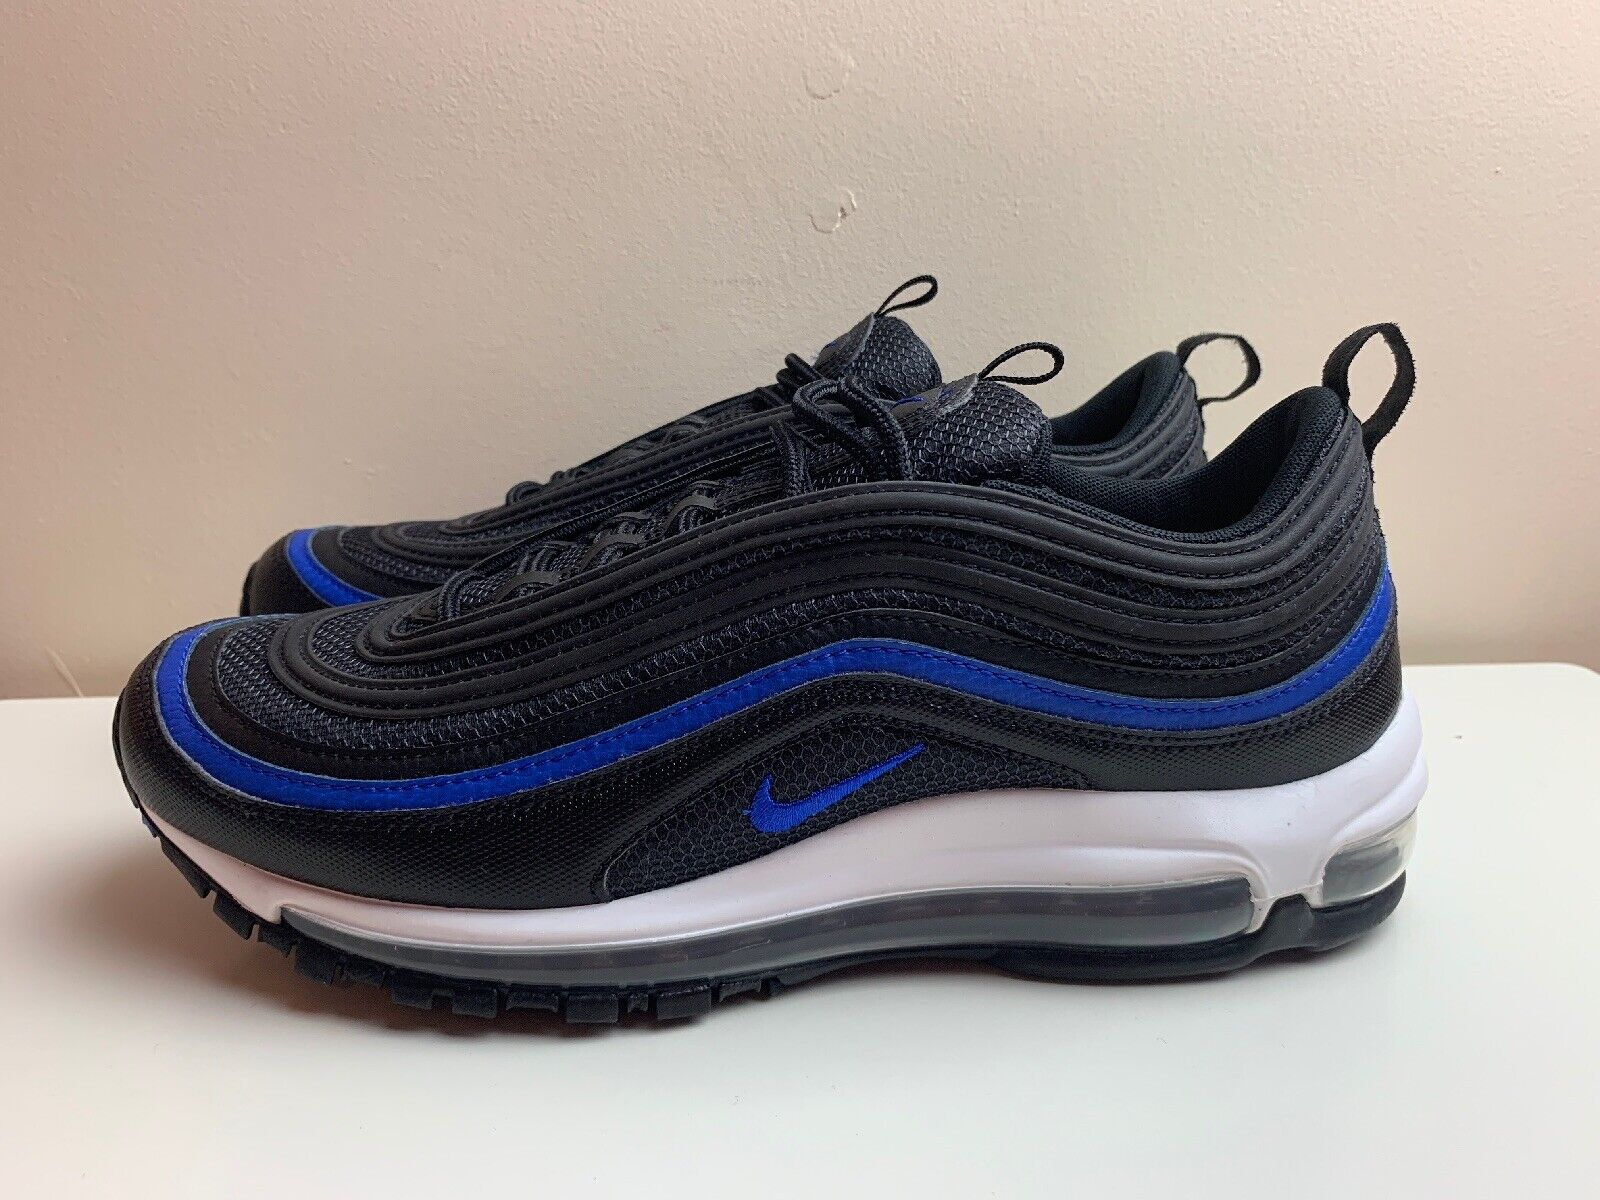 Nike Air Max 97 OG shoes Black bluee AR5531 001